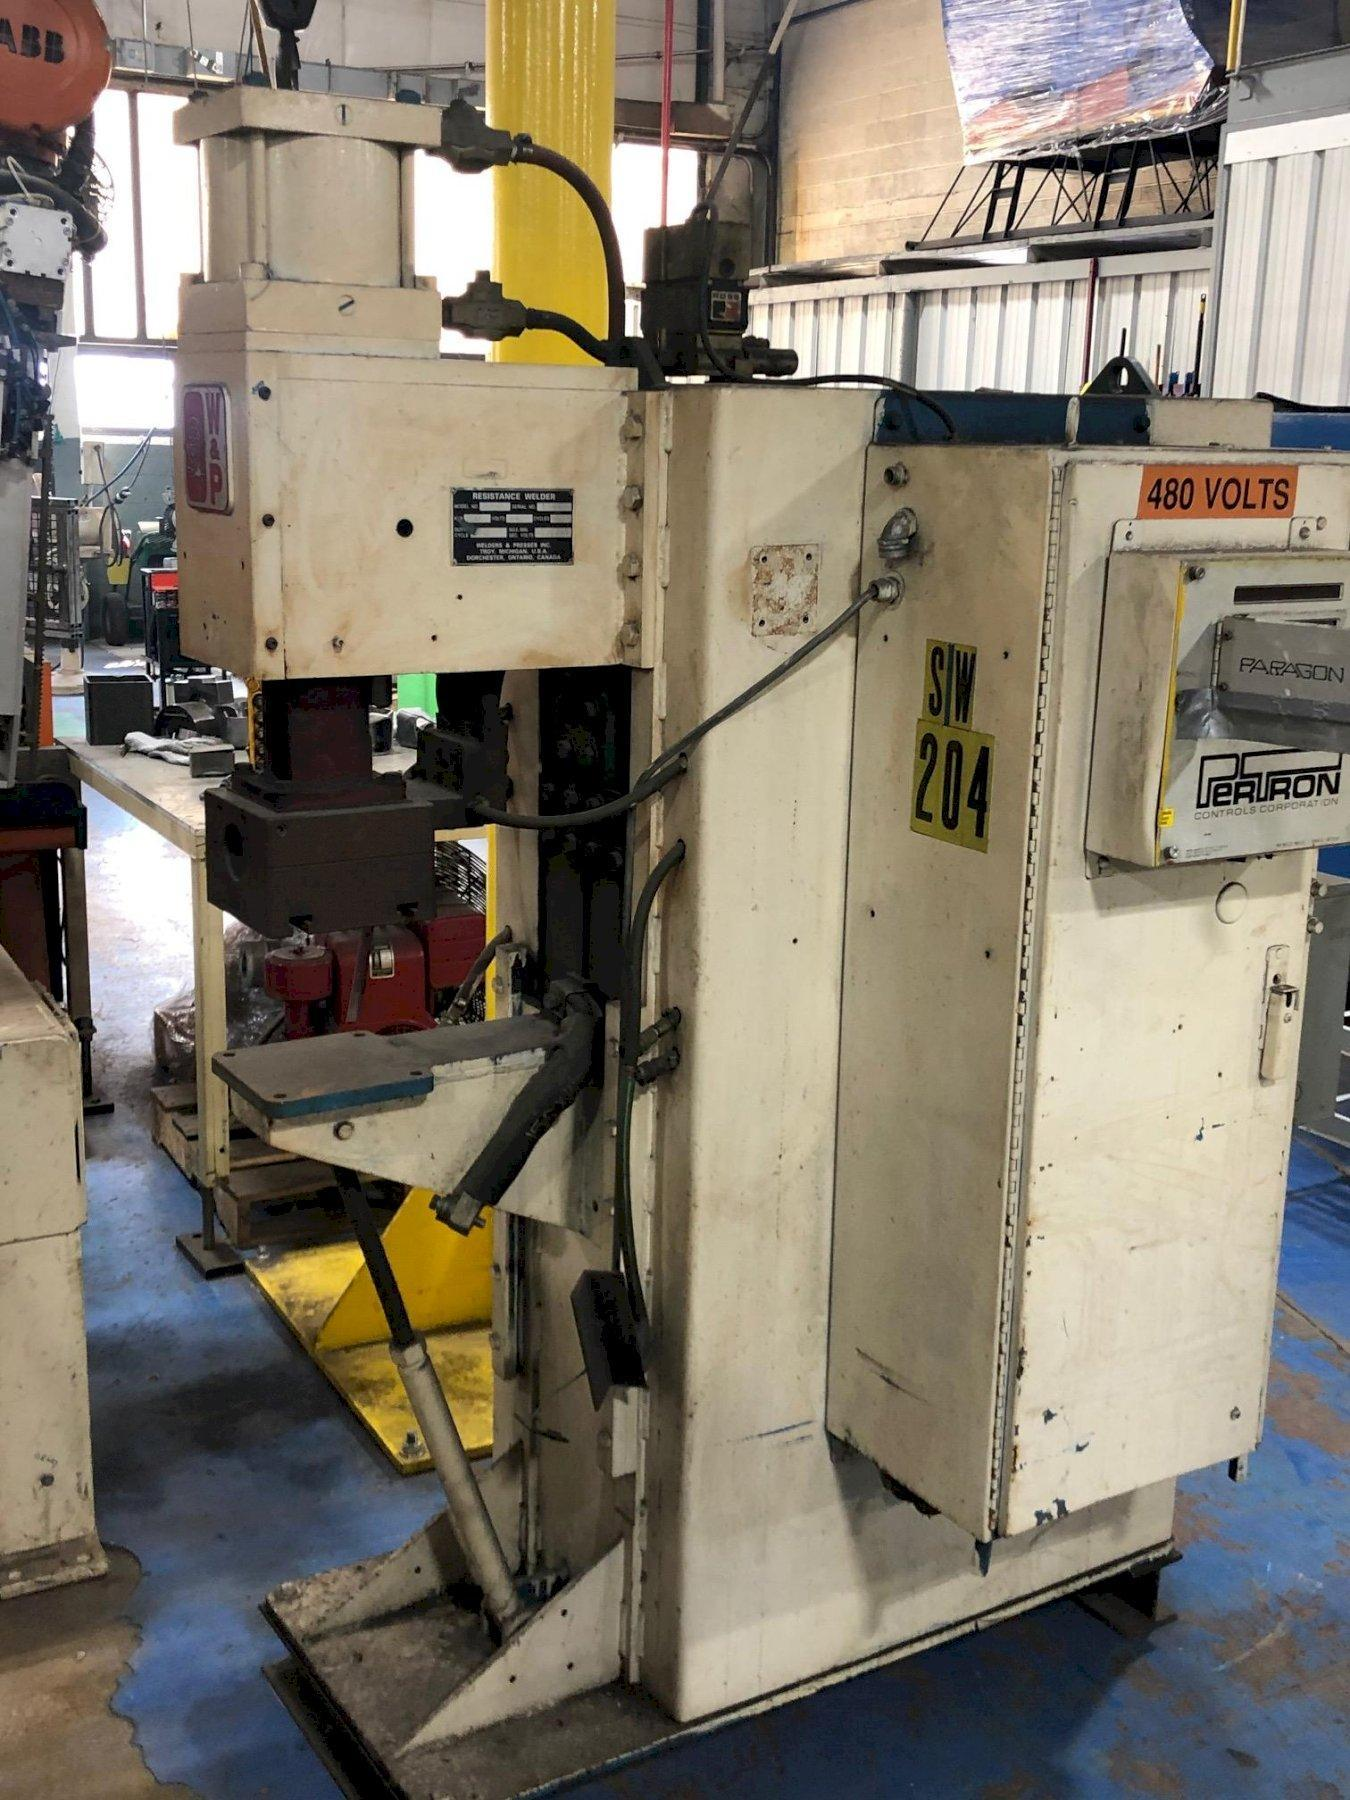 200 KVA Resistance Welder by Welders and Presses Inc. Model #2000